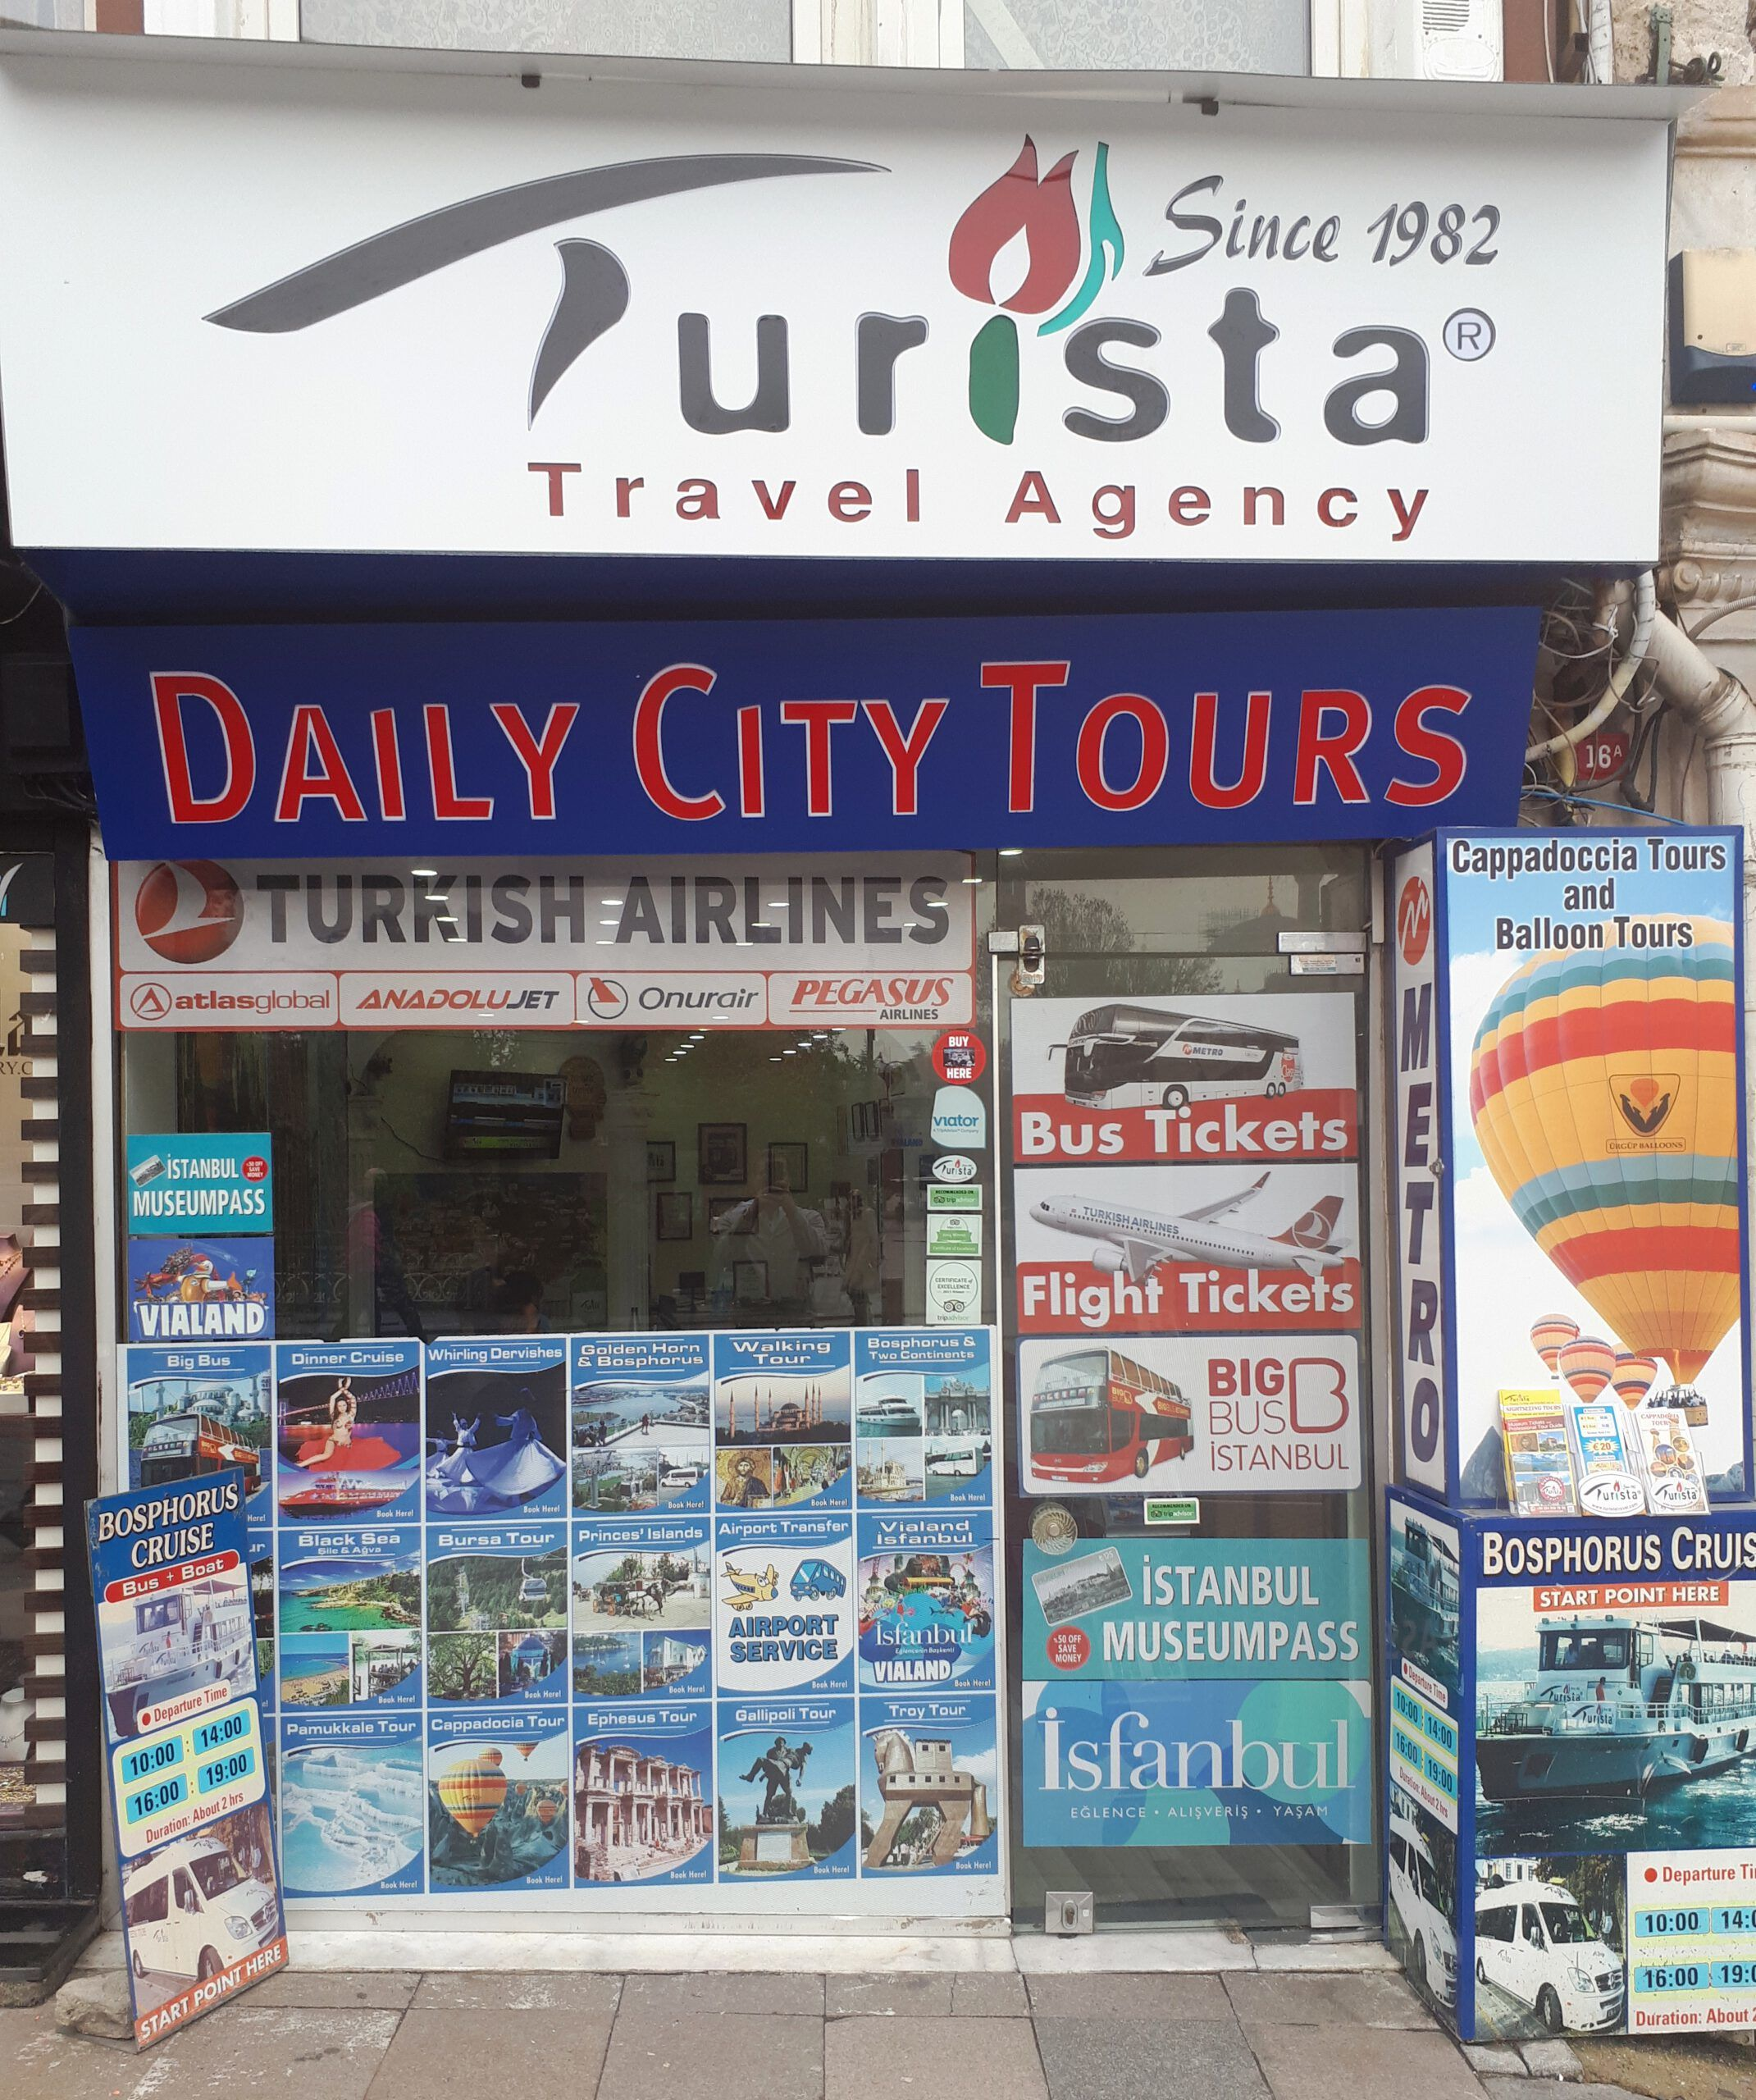 Contact Us; Turista Travel Sales Office